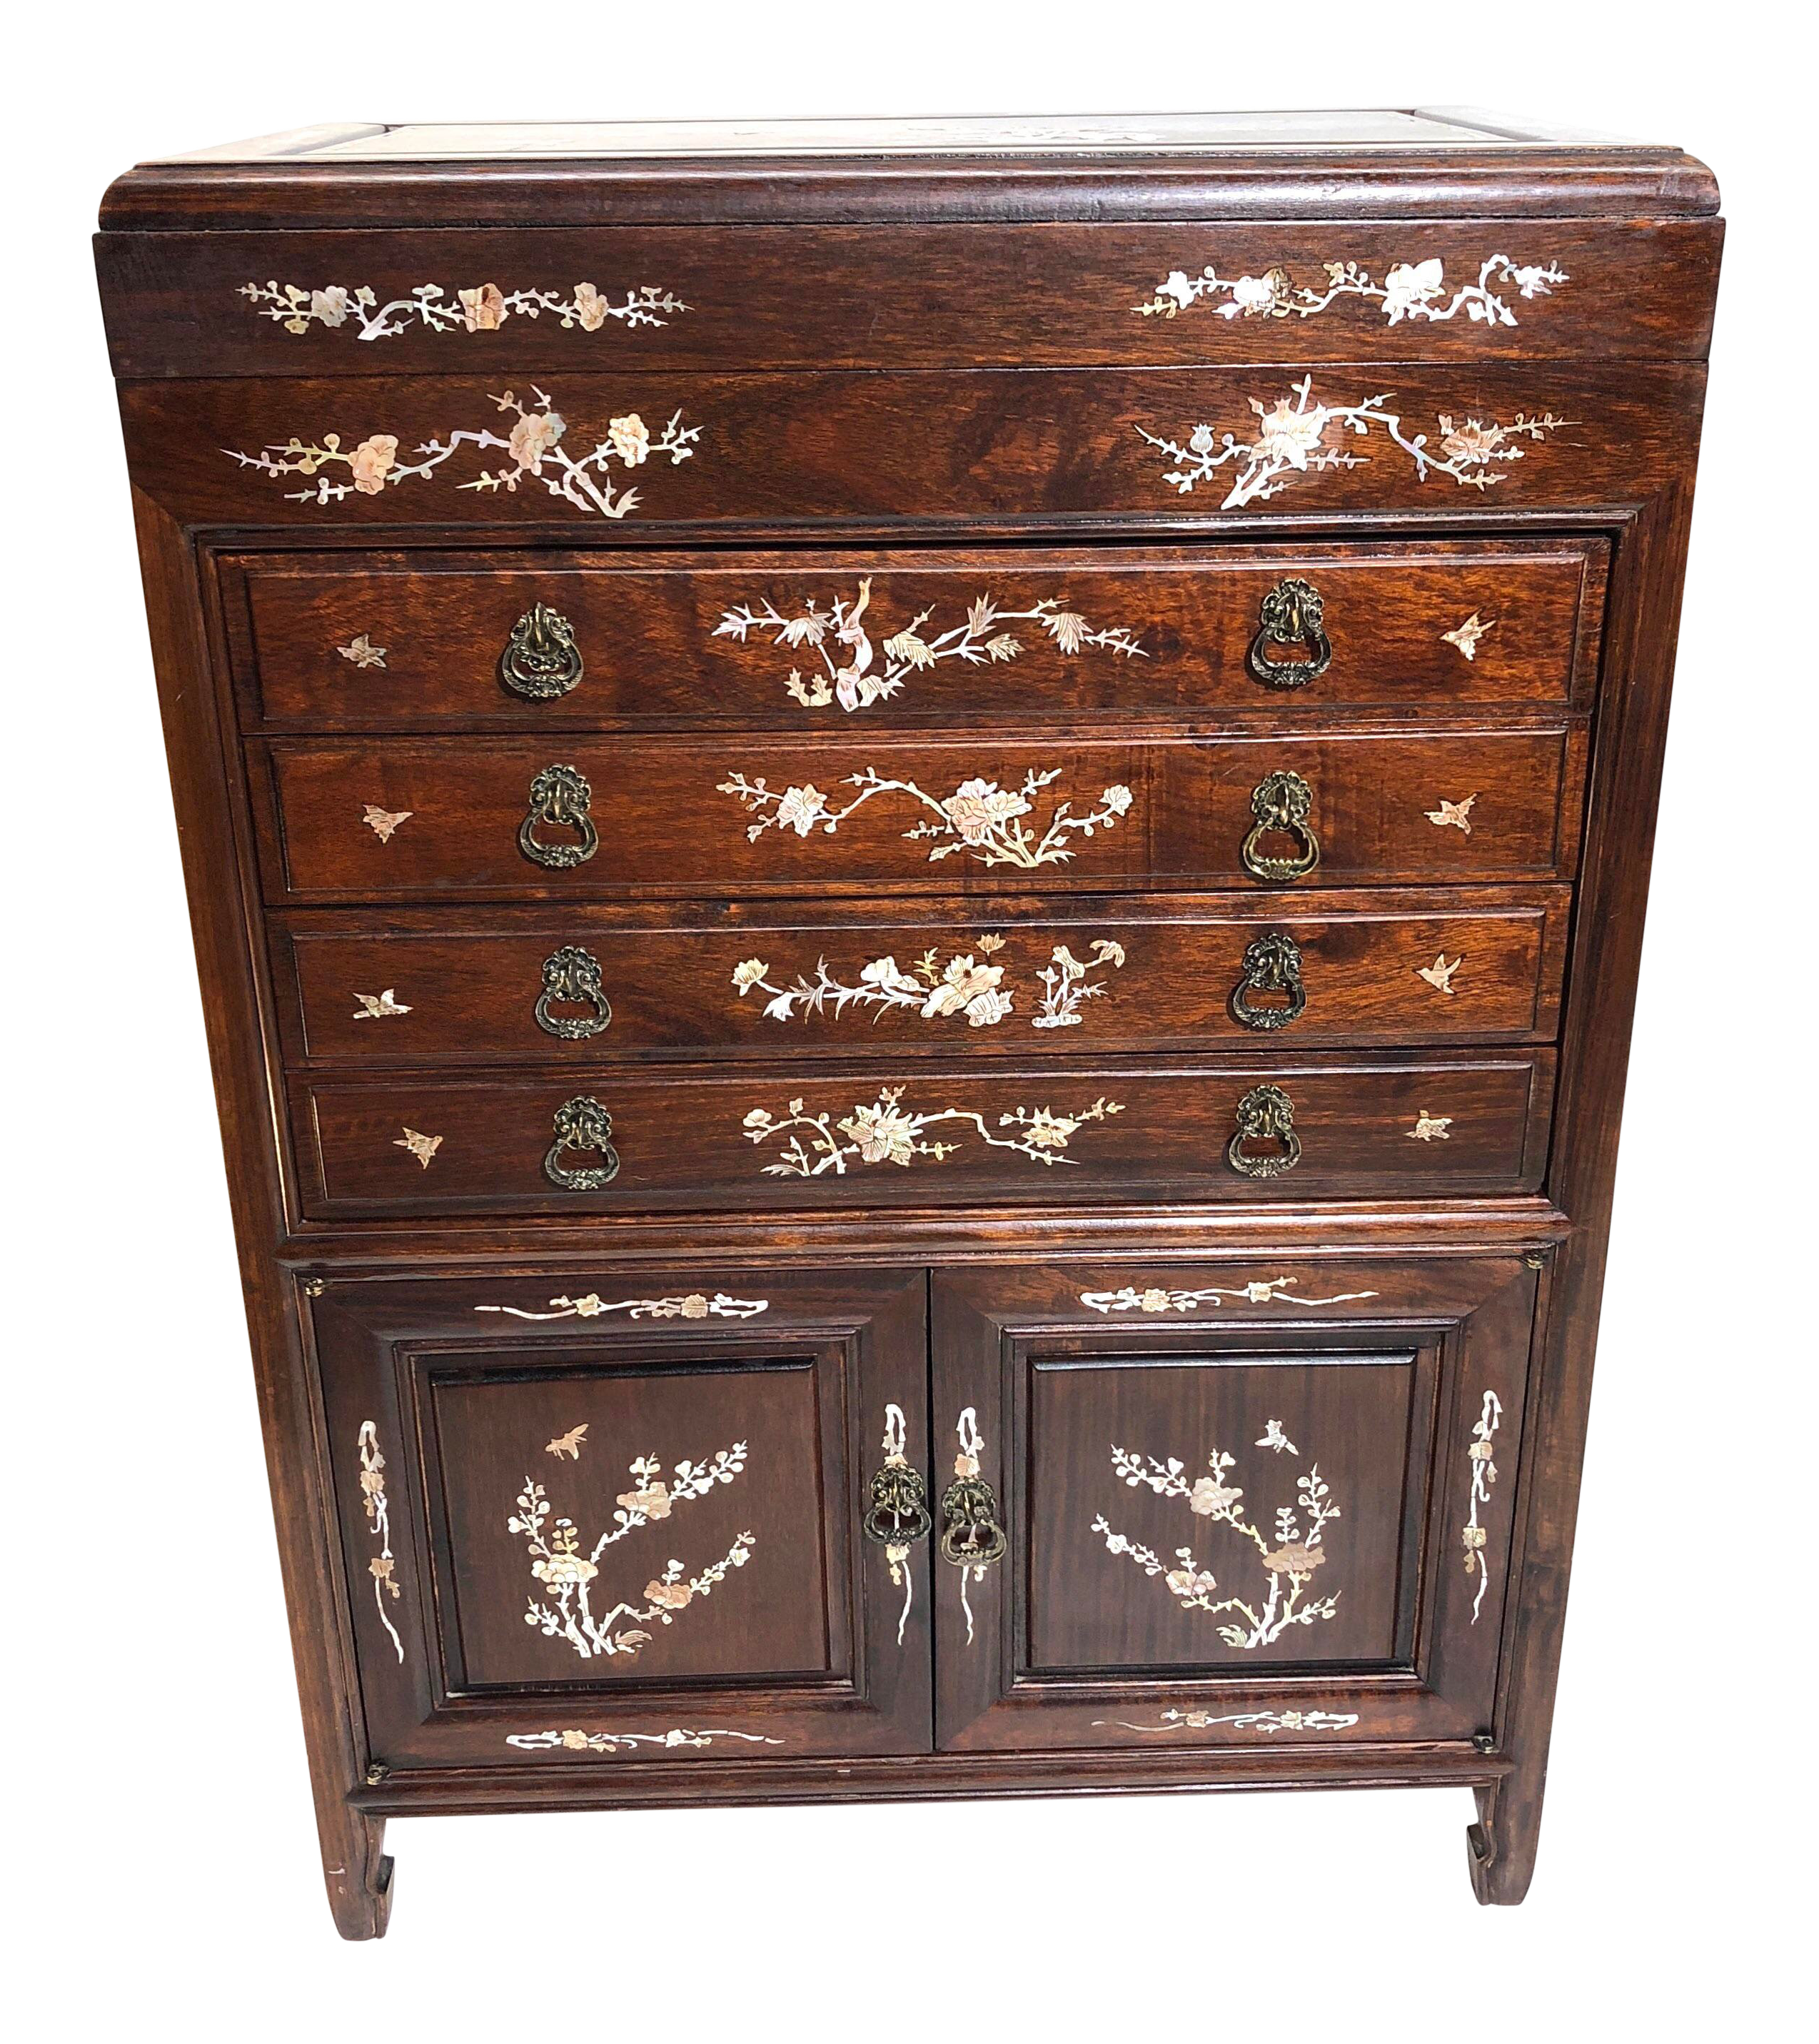 Chinoiserie Rosewood U0026 Mother Of Pearl Silverware/Flatware Cabinet/Chest